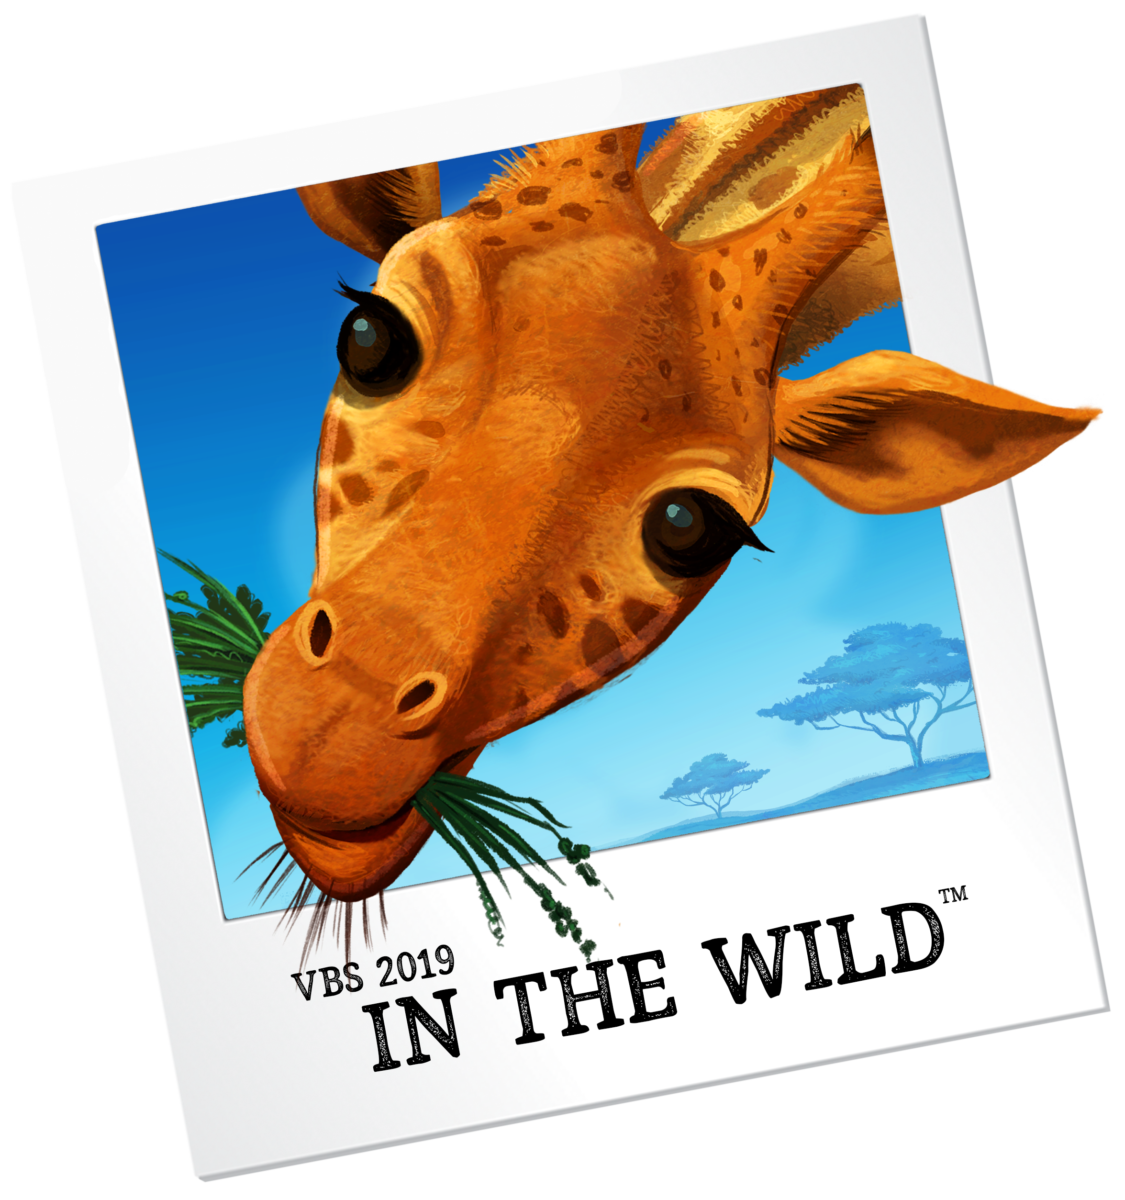 Into the wild vbs clipart jpg royalty free library VBS | Vacation Bible School | LifeWay\'s VBS 2019 is … | LifeWay VBS 2019 jpg royalty free library